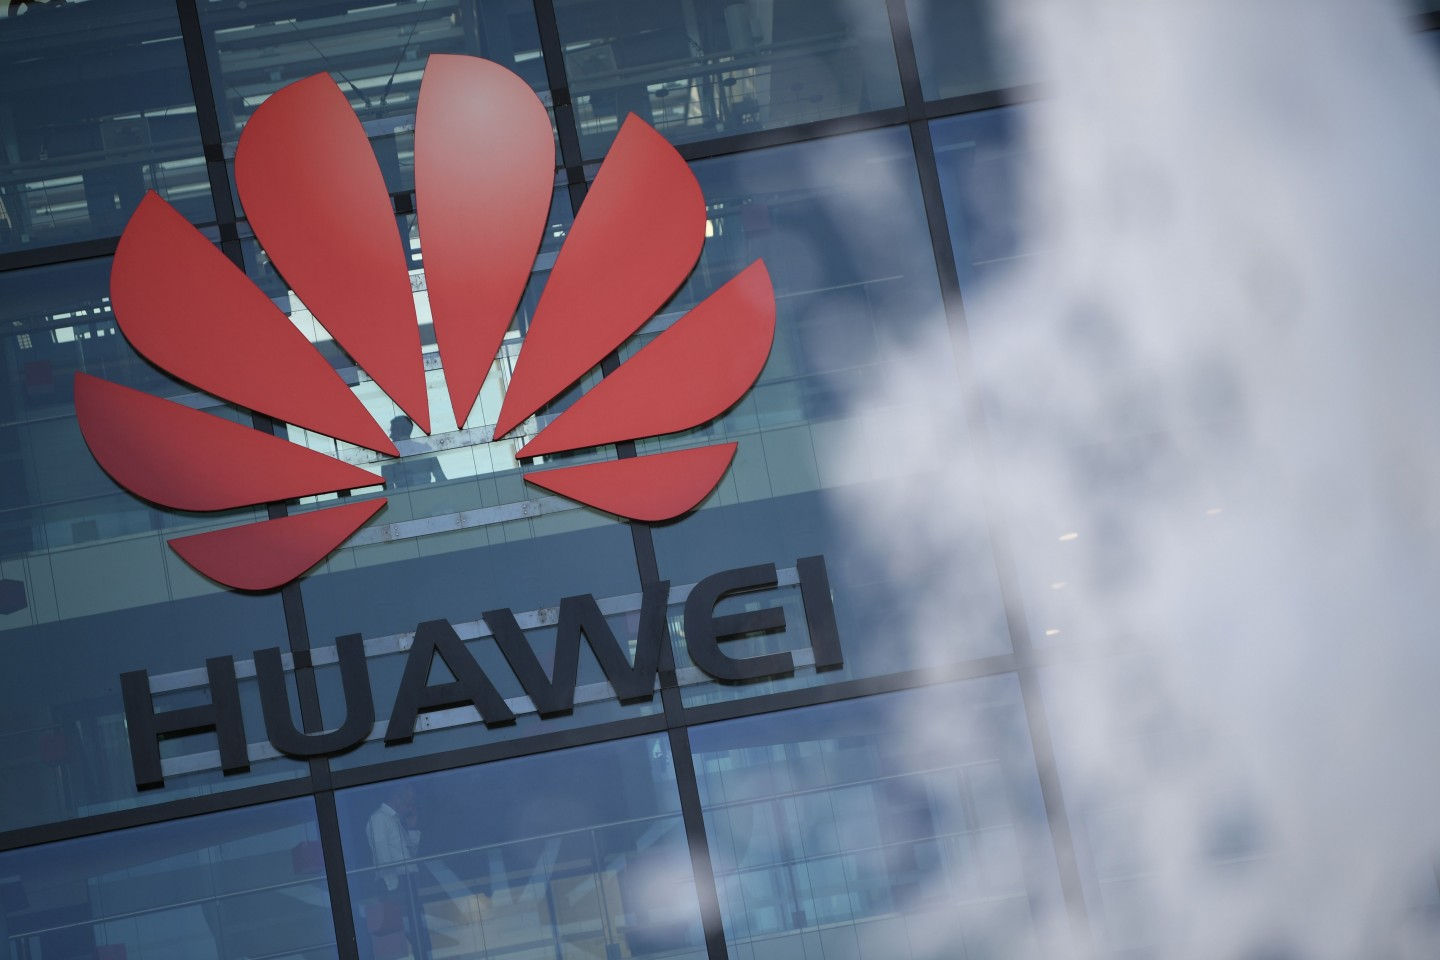 Huawei's rolling out of the 5G network has raised national security concerns. (Daniel Leal-Olivas/AFP)